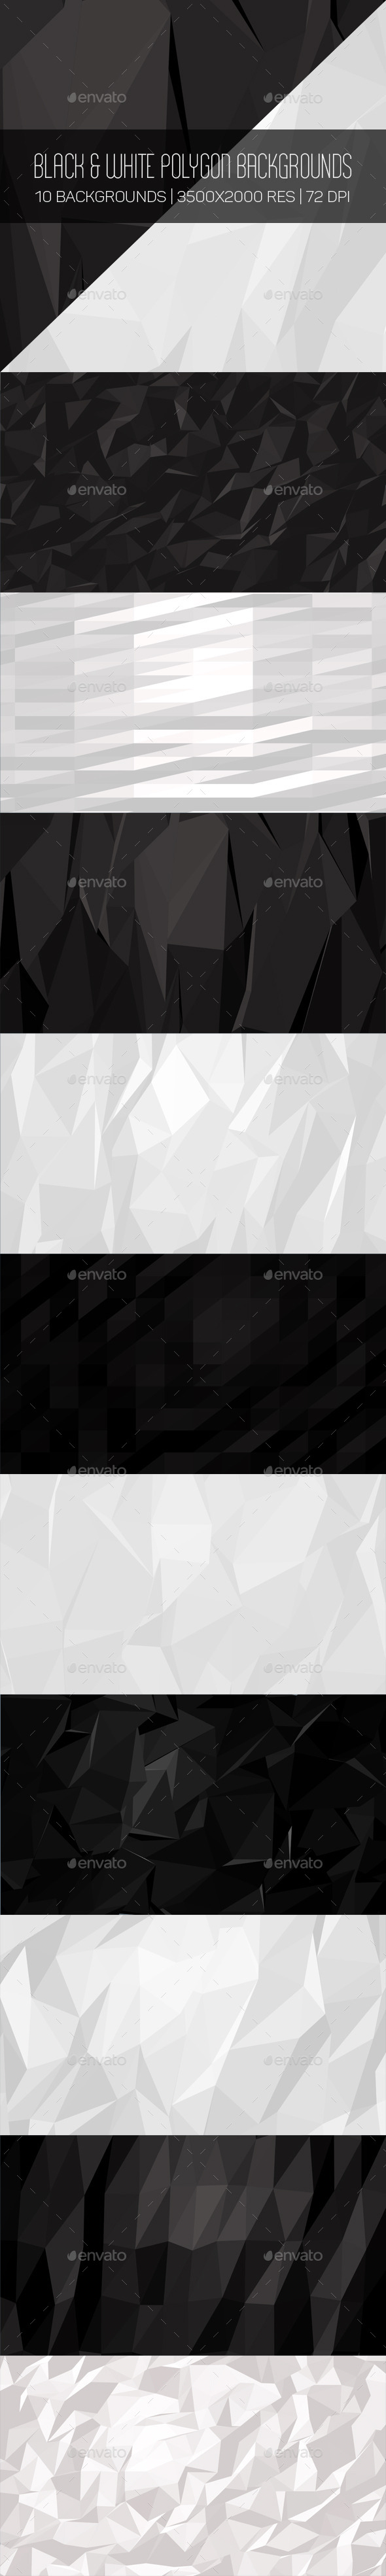 Black & White Polygon Backgrounds - Abstract Backgrounds